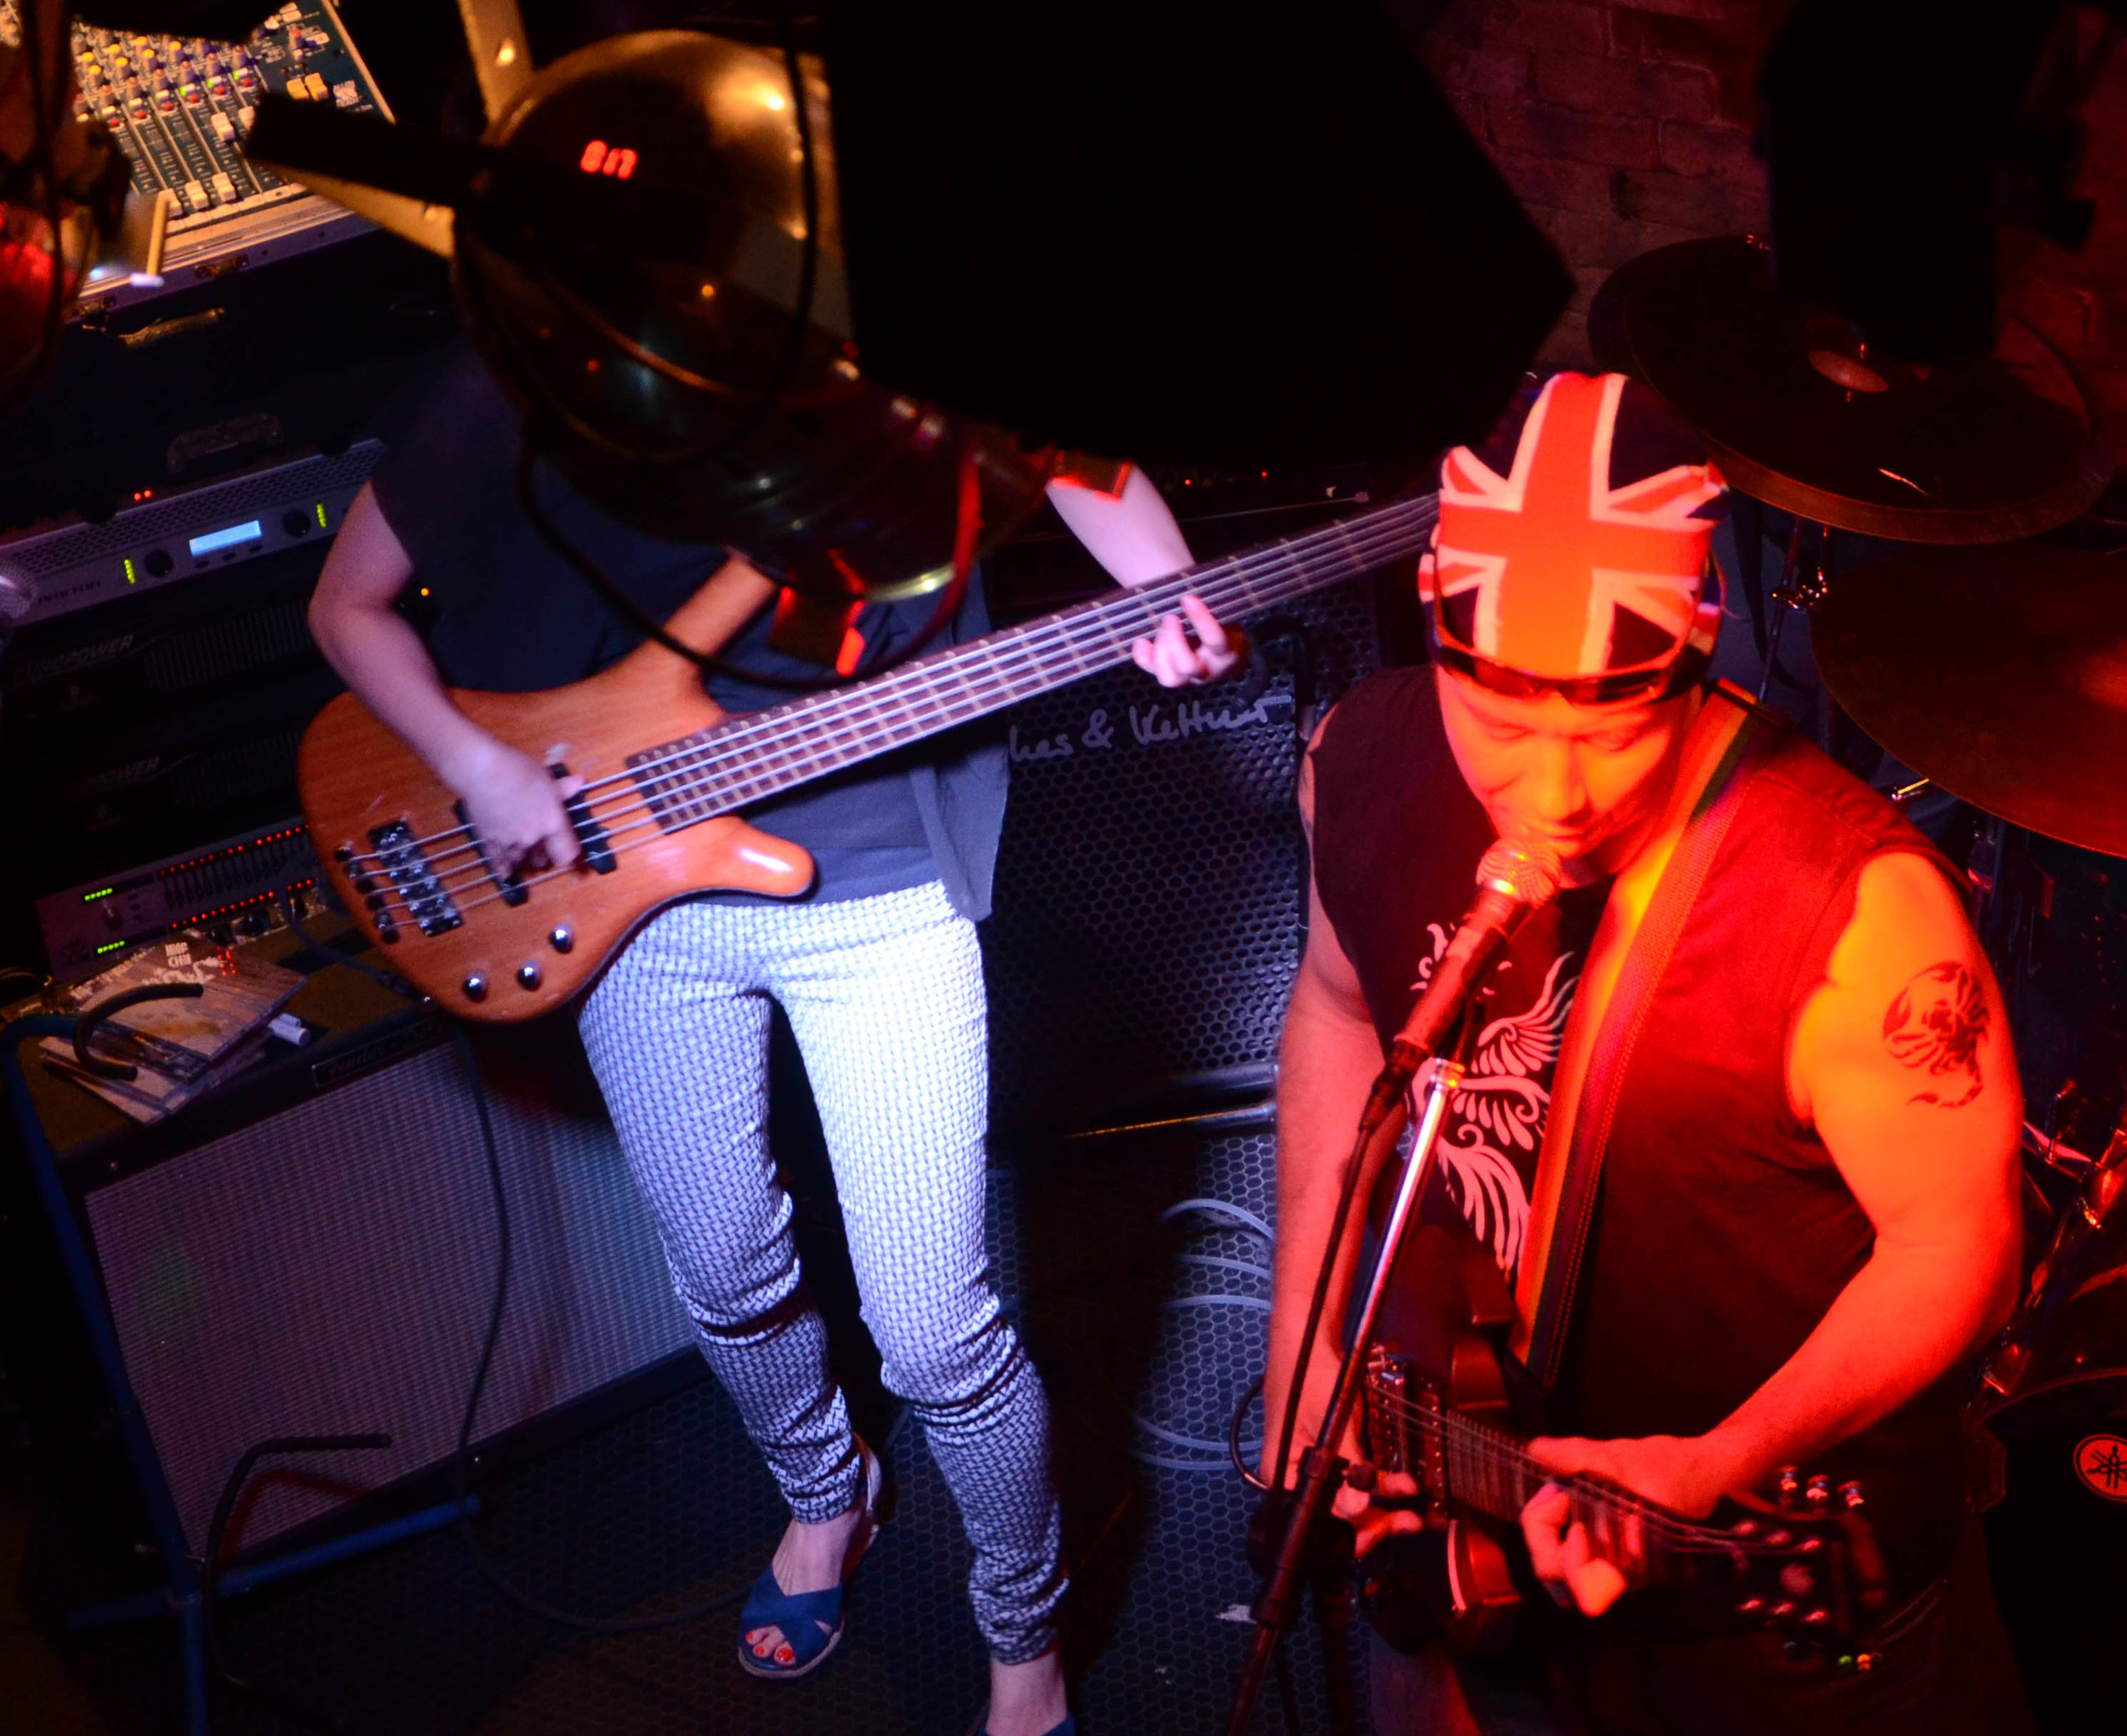 Yukako Ishii crushing on bass and Andy Kinlay flying the Union Jack